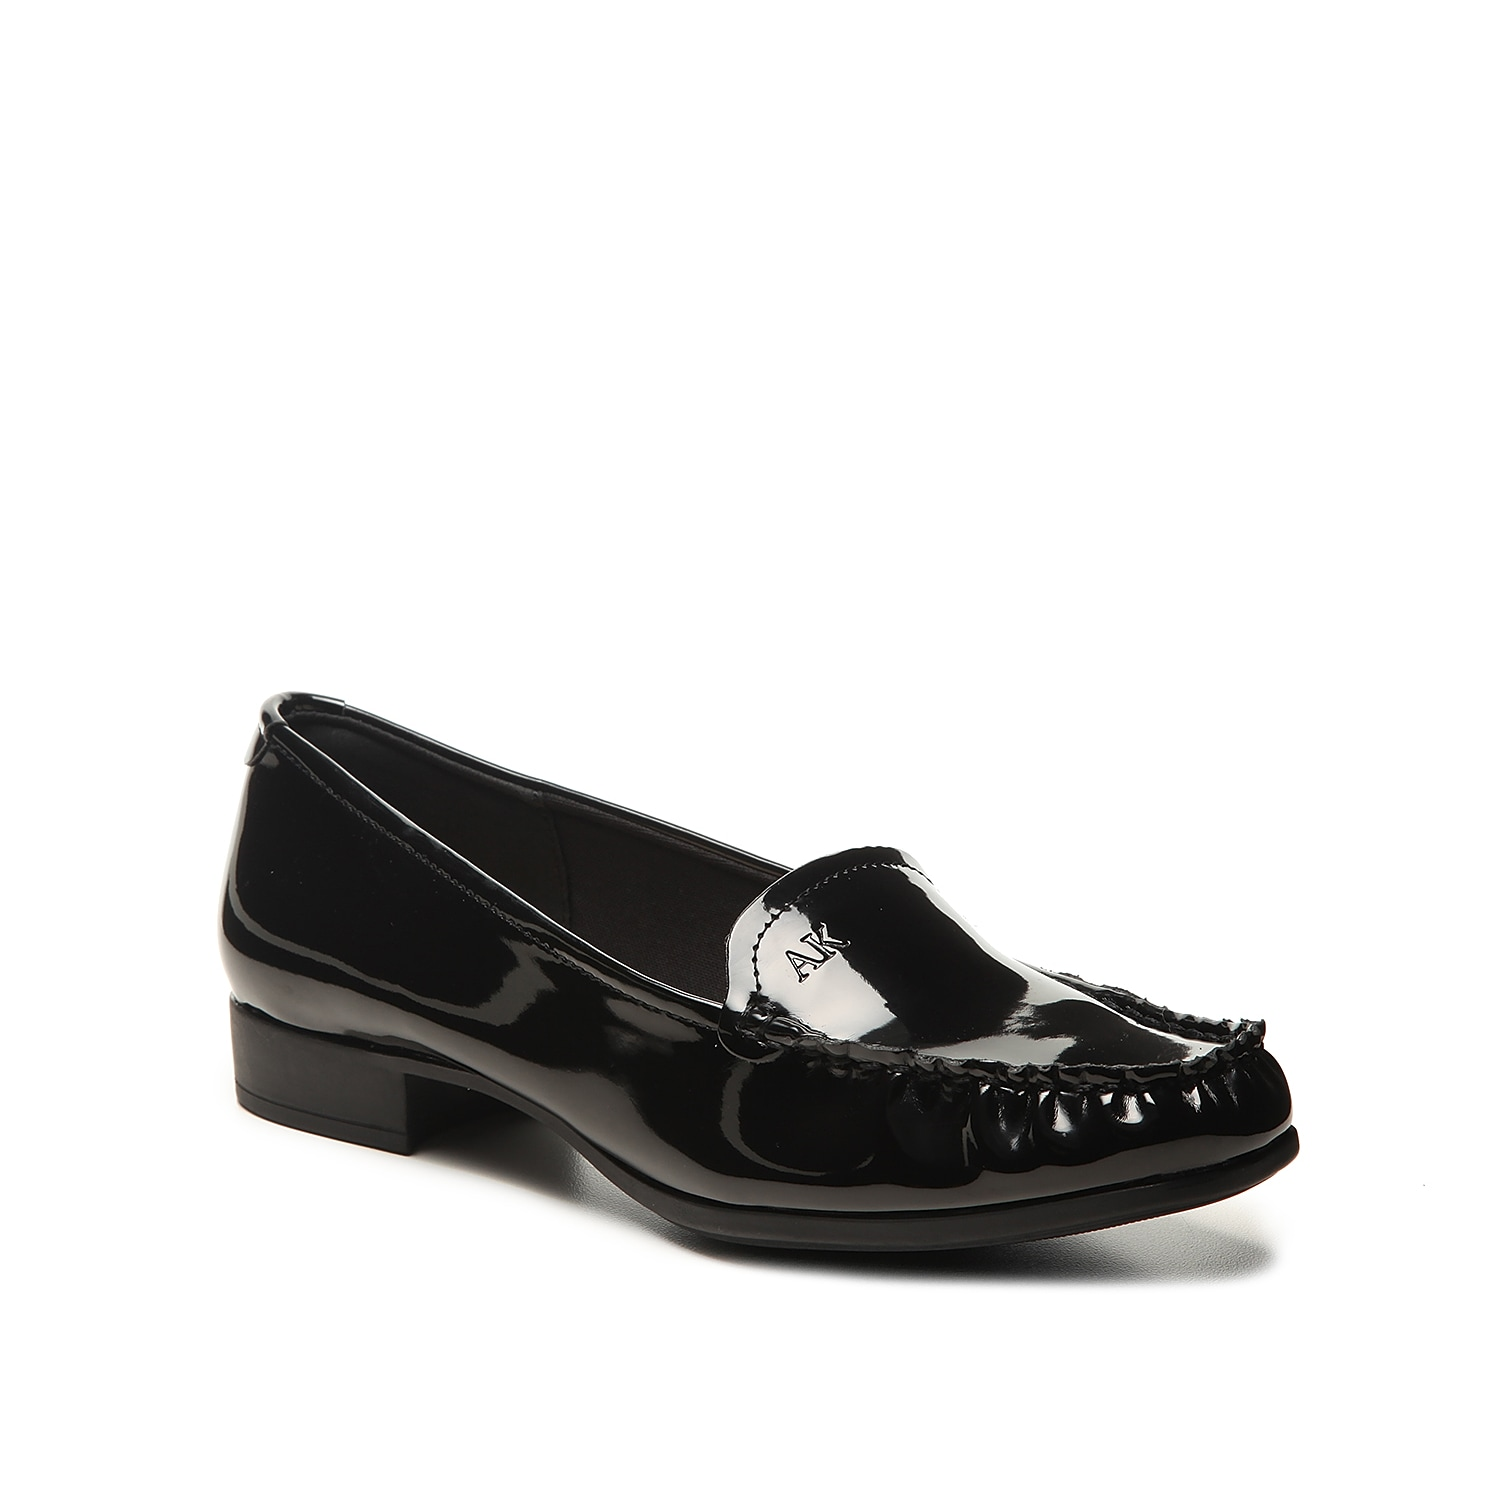 The Vama loafer from Anne Klein adds a sleek update to any work or weekend look. These slip-ons feature a subtle block heel for a hint of height and is finished with a square moc toe that goes great with cropped trousers.